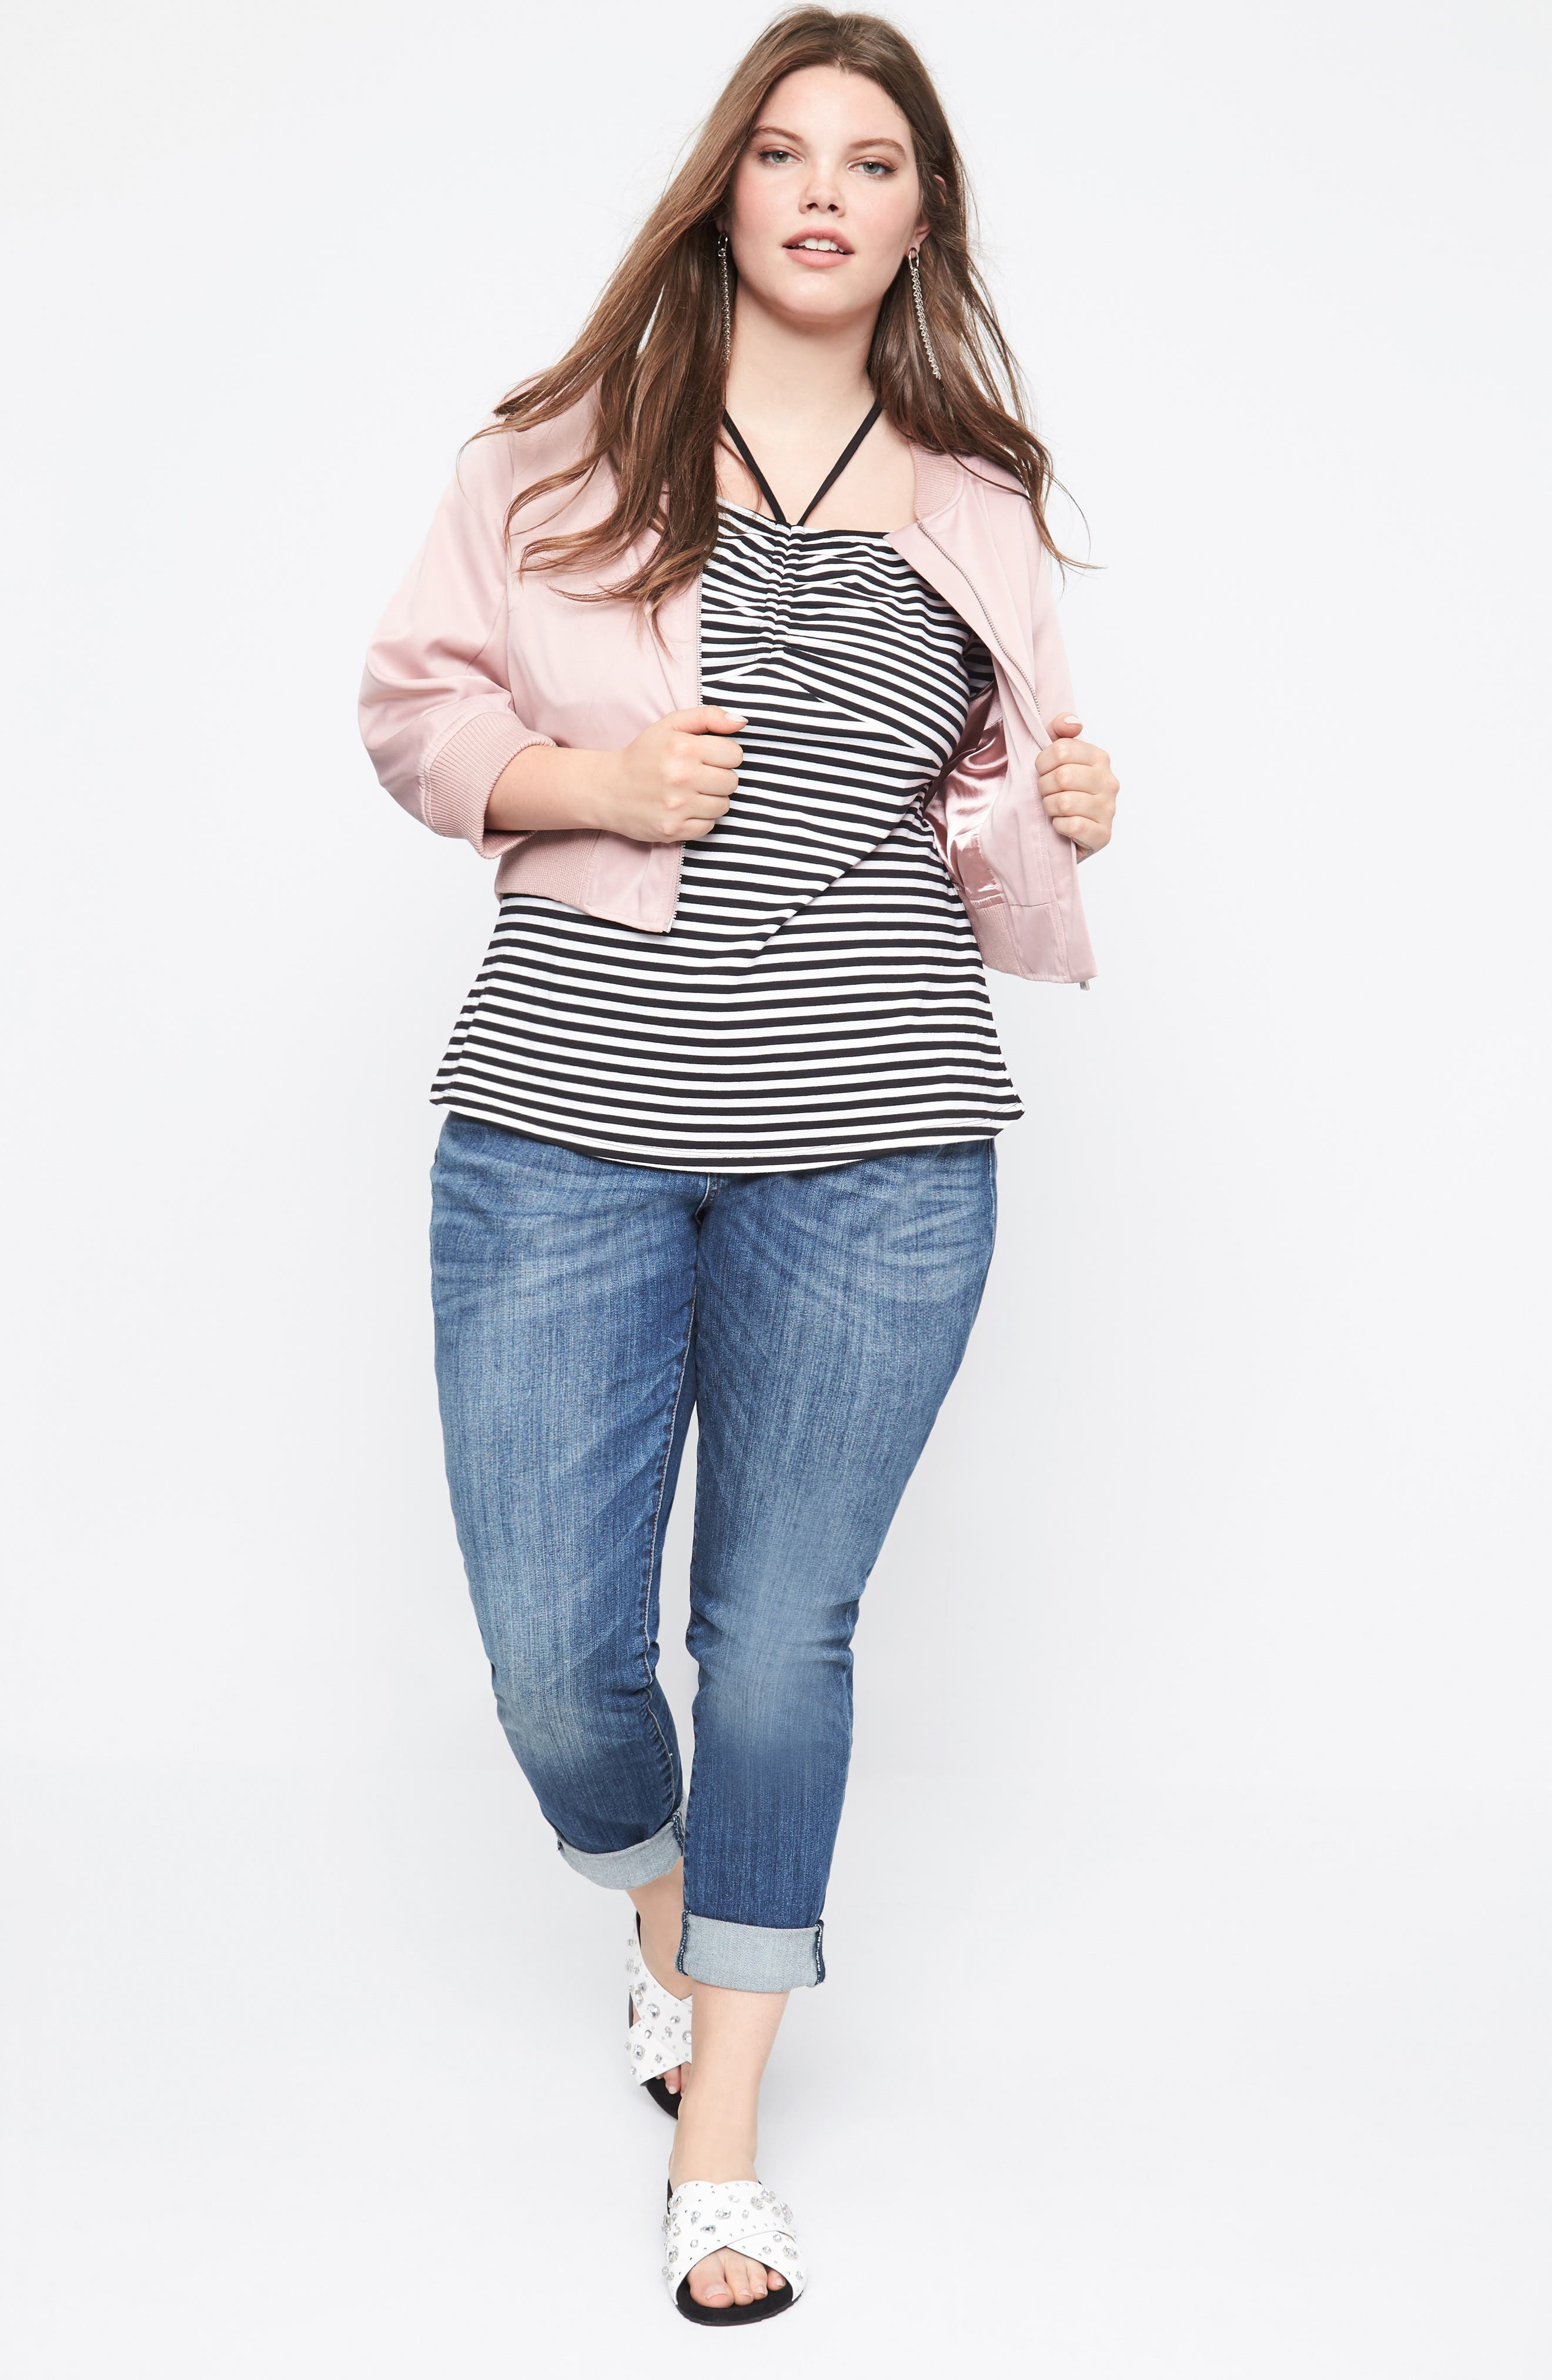 City Chic Jacket, Top & KUT from the Kloth Jeans Outfit with Accessories (Plus Size)